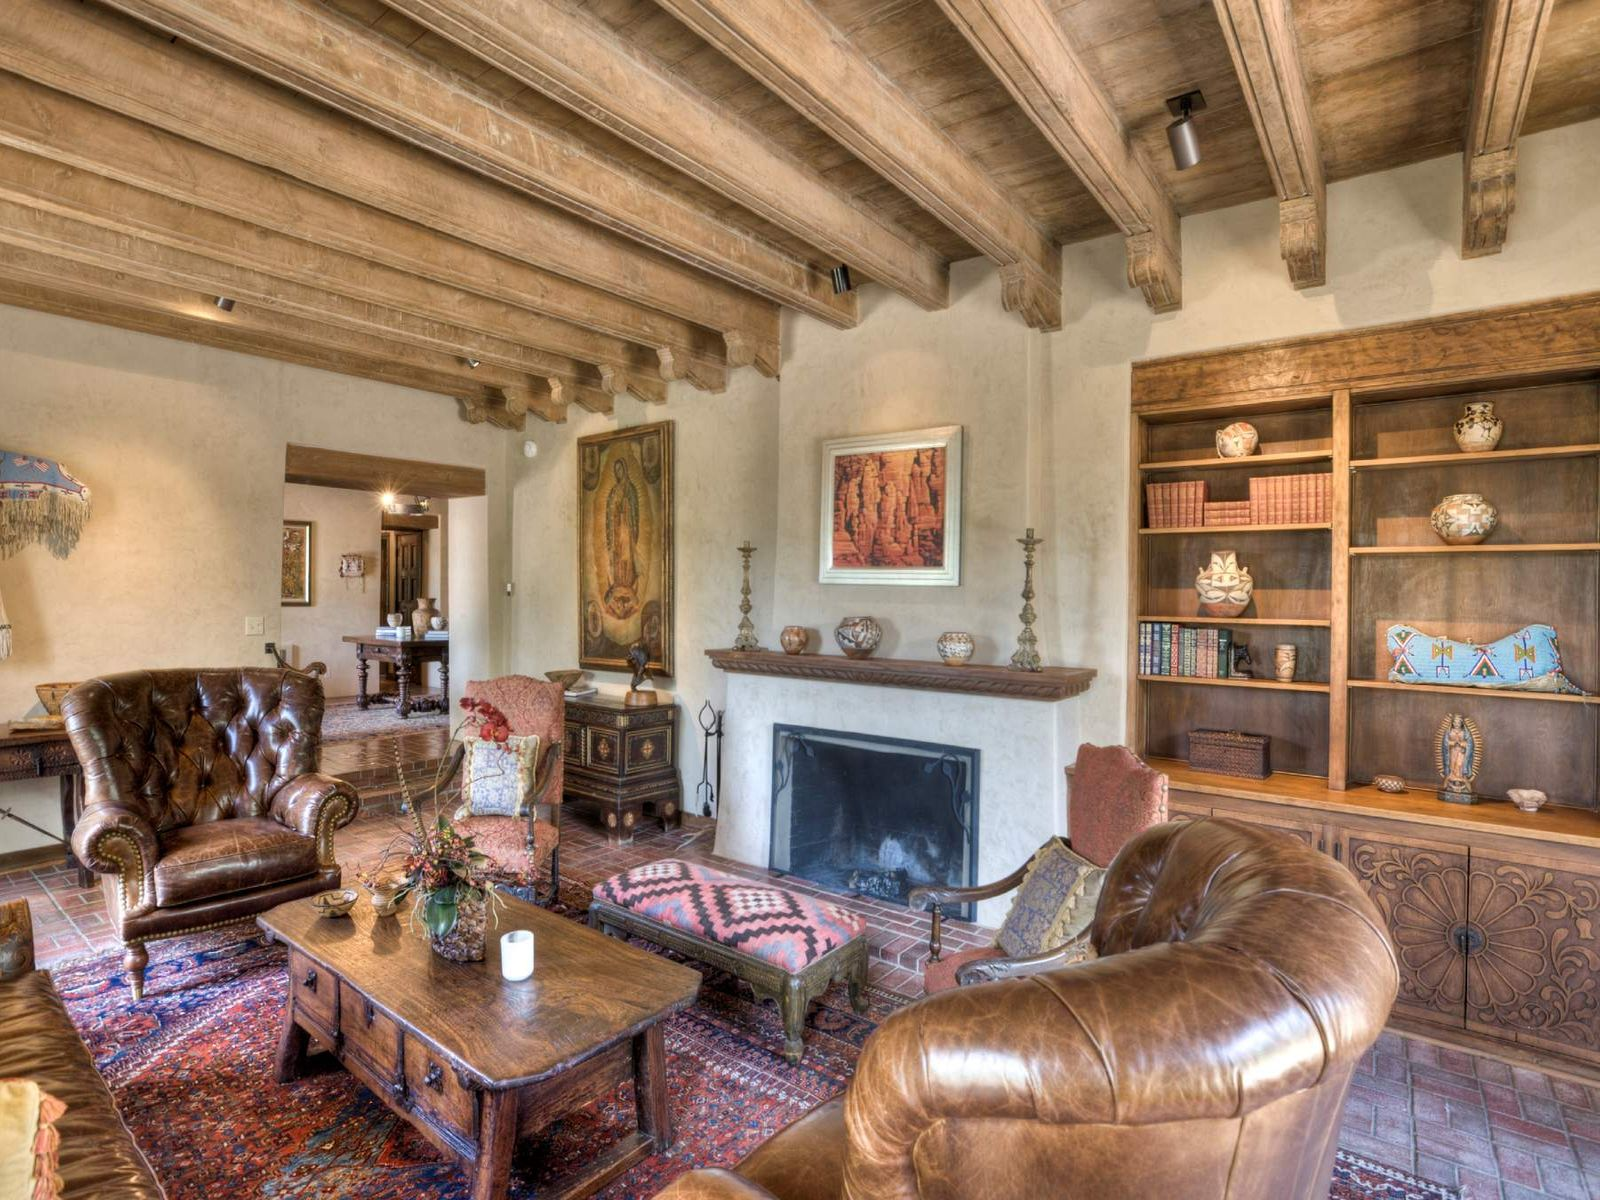 217 Camino Del Norte, Santa Fe NM Single Family Home - Santa Fe Real Estate